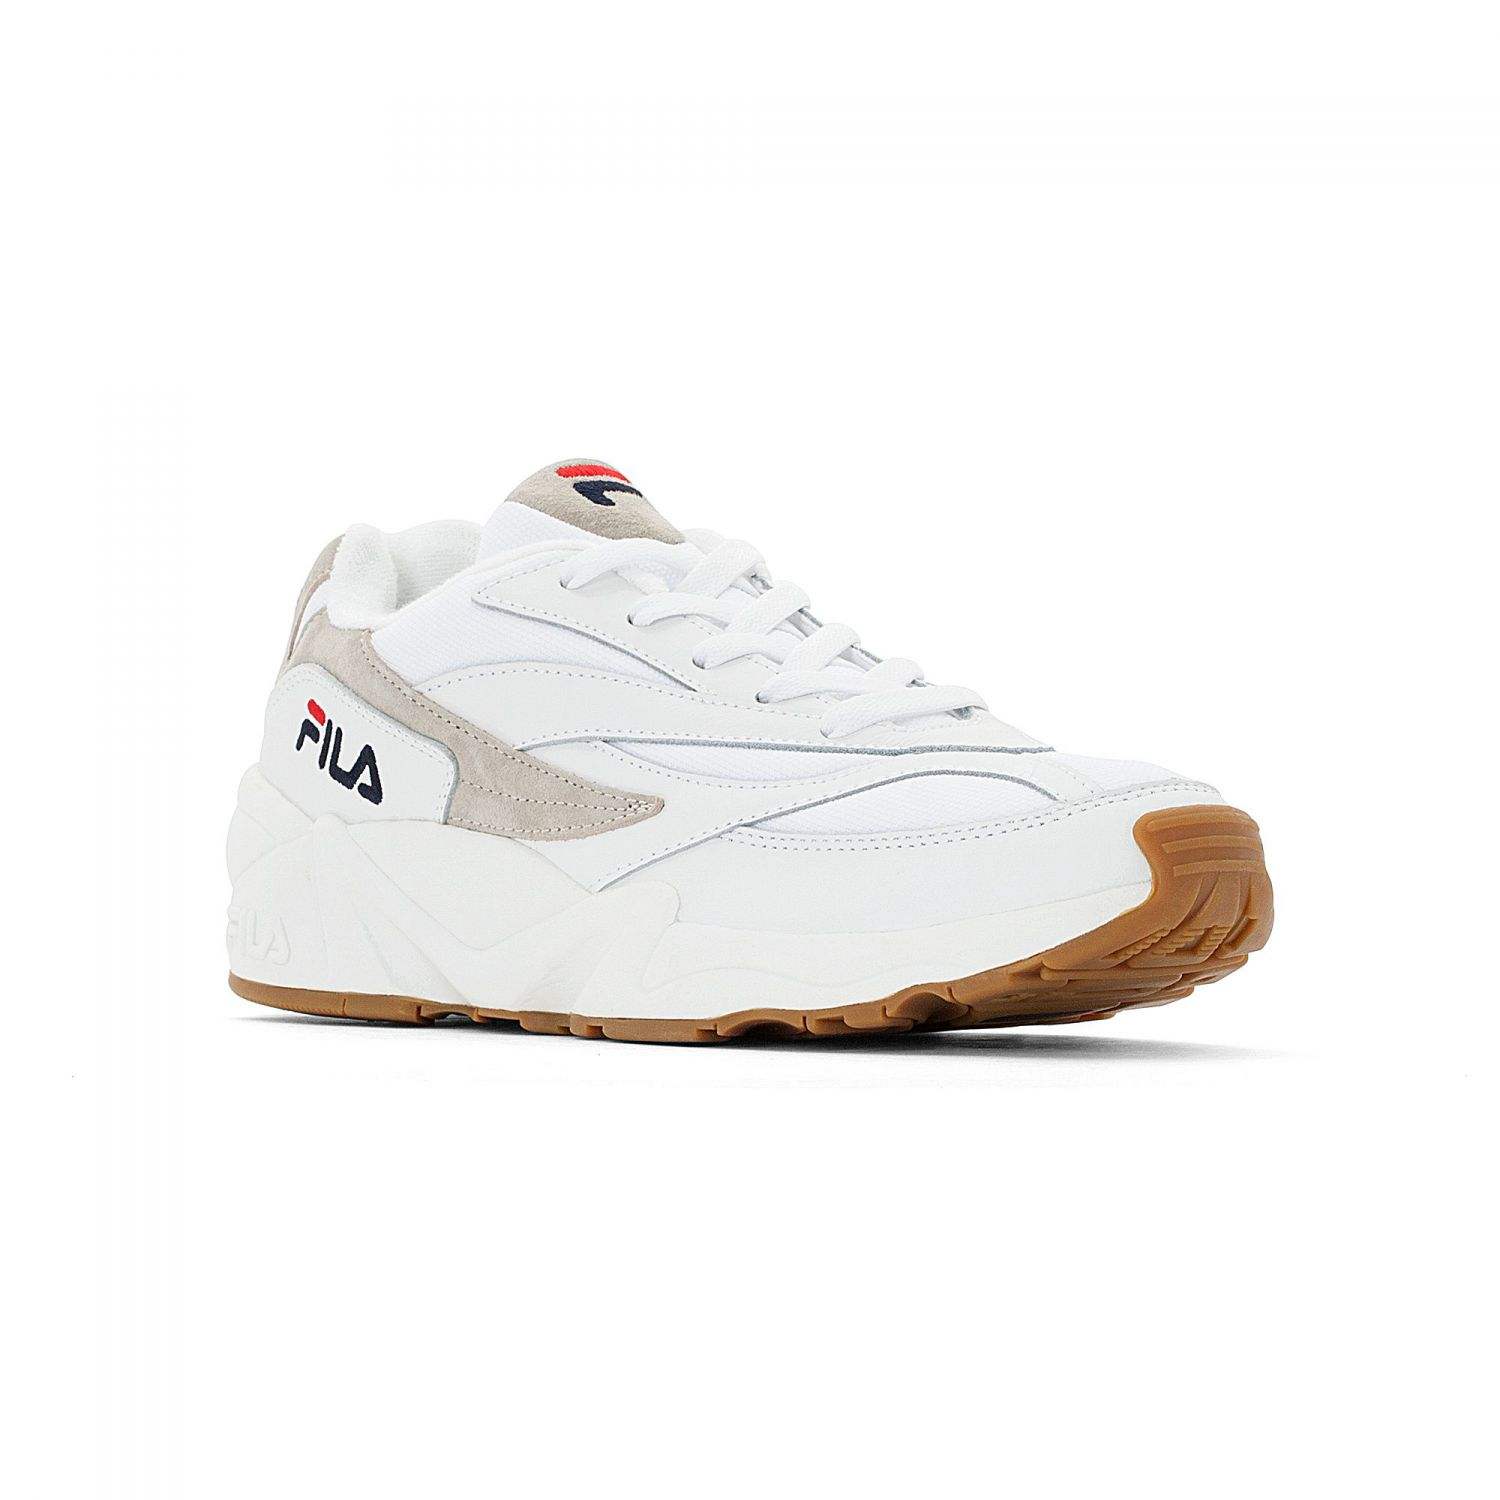 WeißOfficial Men Fila Low V94m White rshdtQ